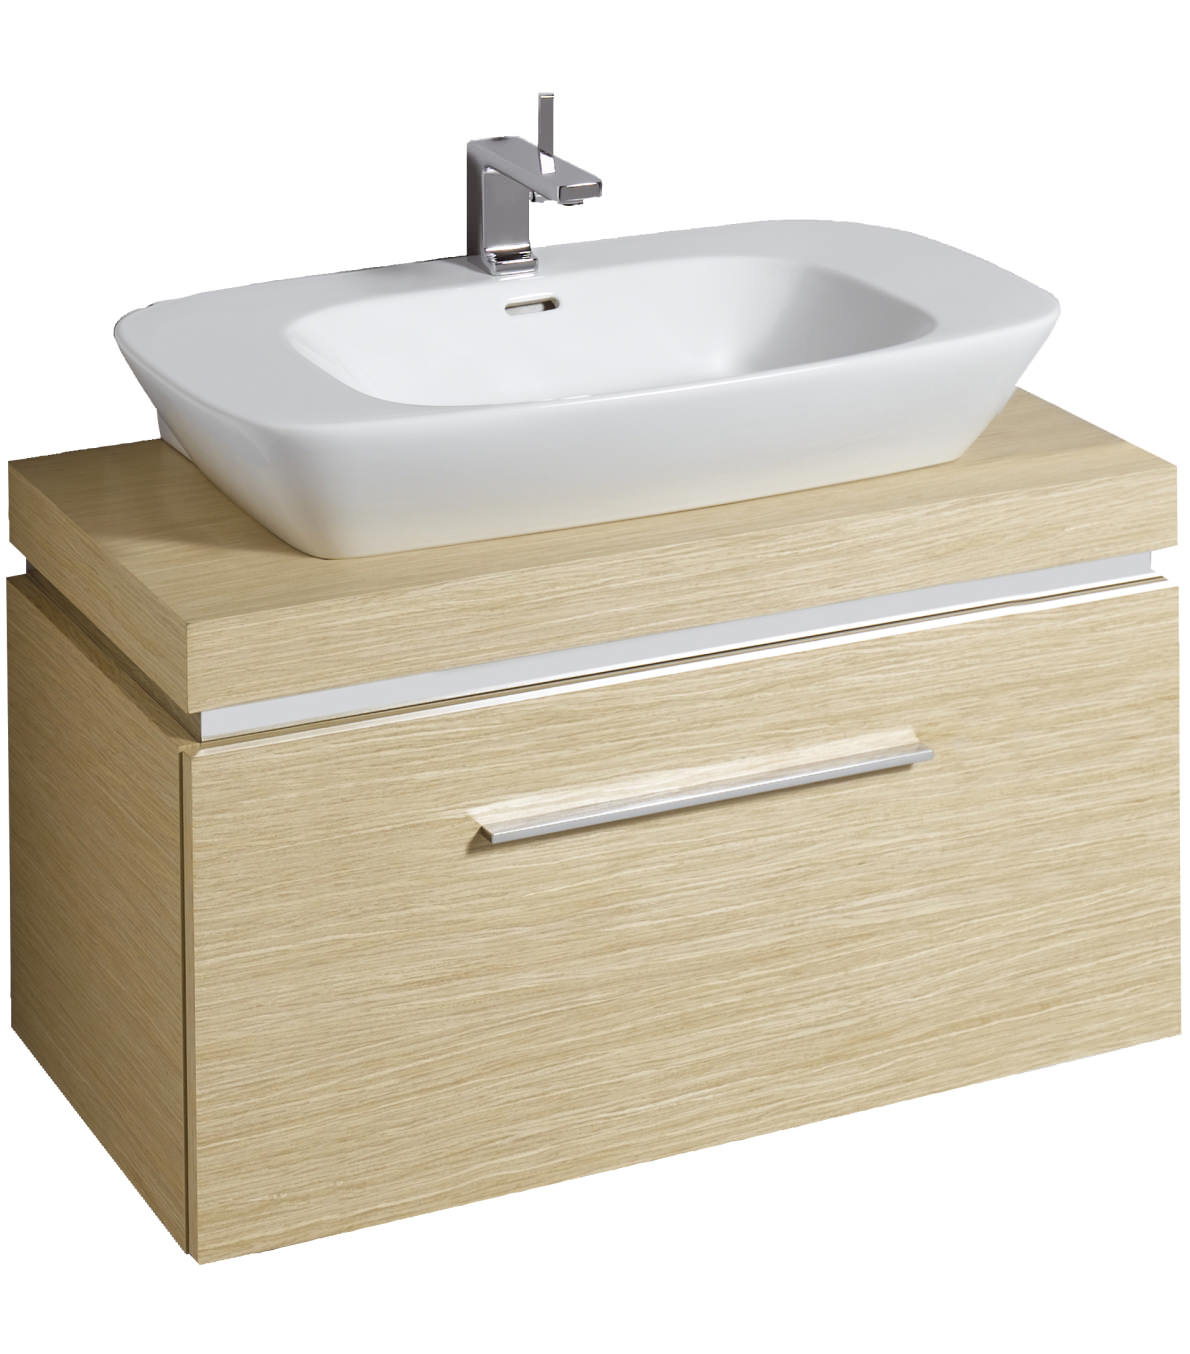 Countertop Shelf : Twyford Vello 800mm Countertop Basin With 1000mm Shelf And Vanity Unit ...